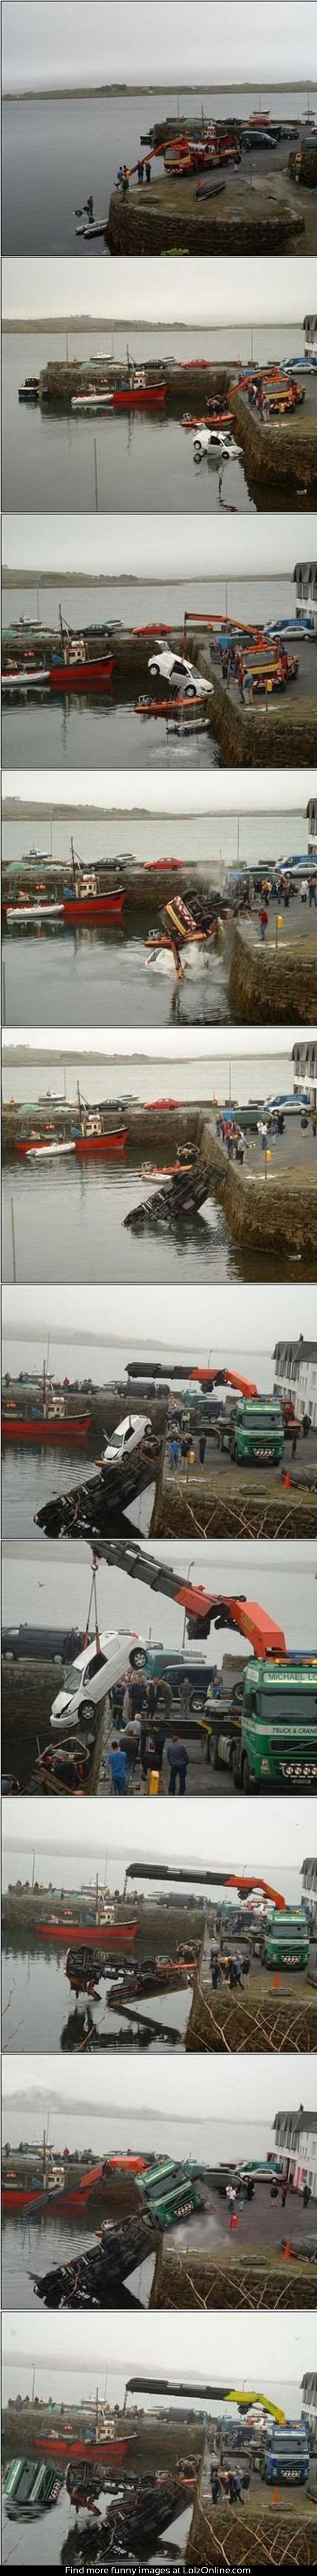 Crane fail - How many tow trucks and cranes does it Actually take to lift ONE mini van out of the Sea 1...2...3...4...5. FIVE LMAO.